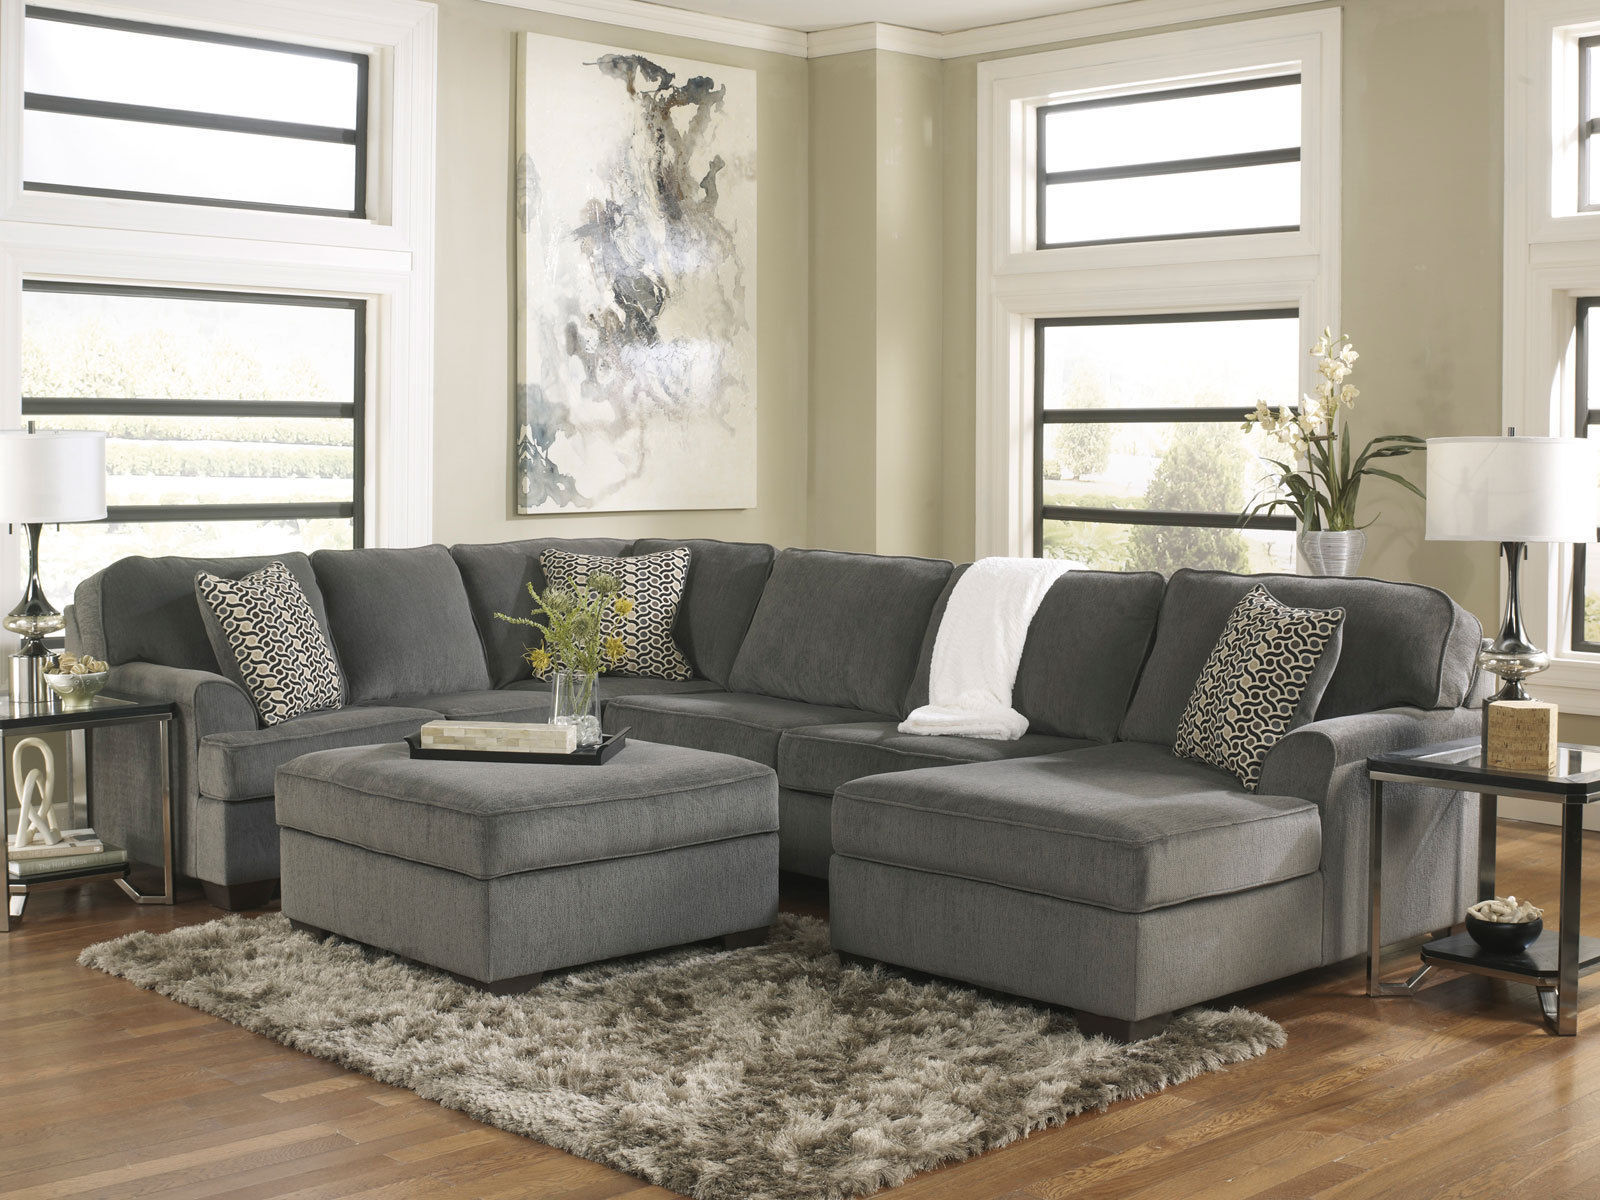 sole oversized modern gray fabric sofa couch sectional set living room furniture sofas. Black Bedroom Furniture Sets. Home Design Ideas